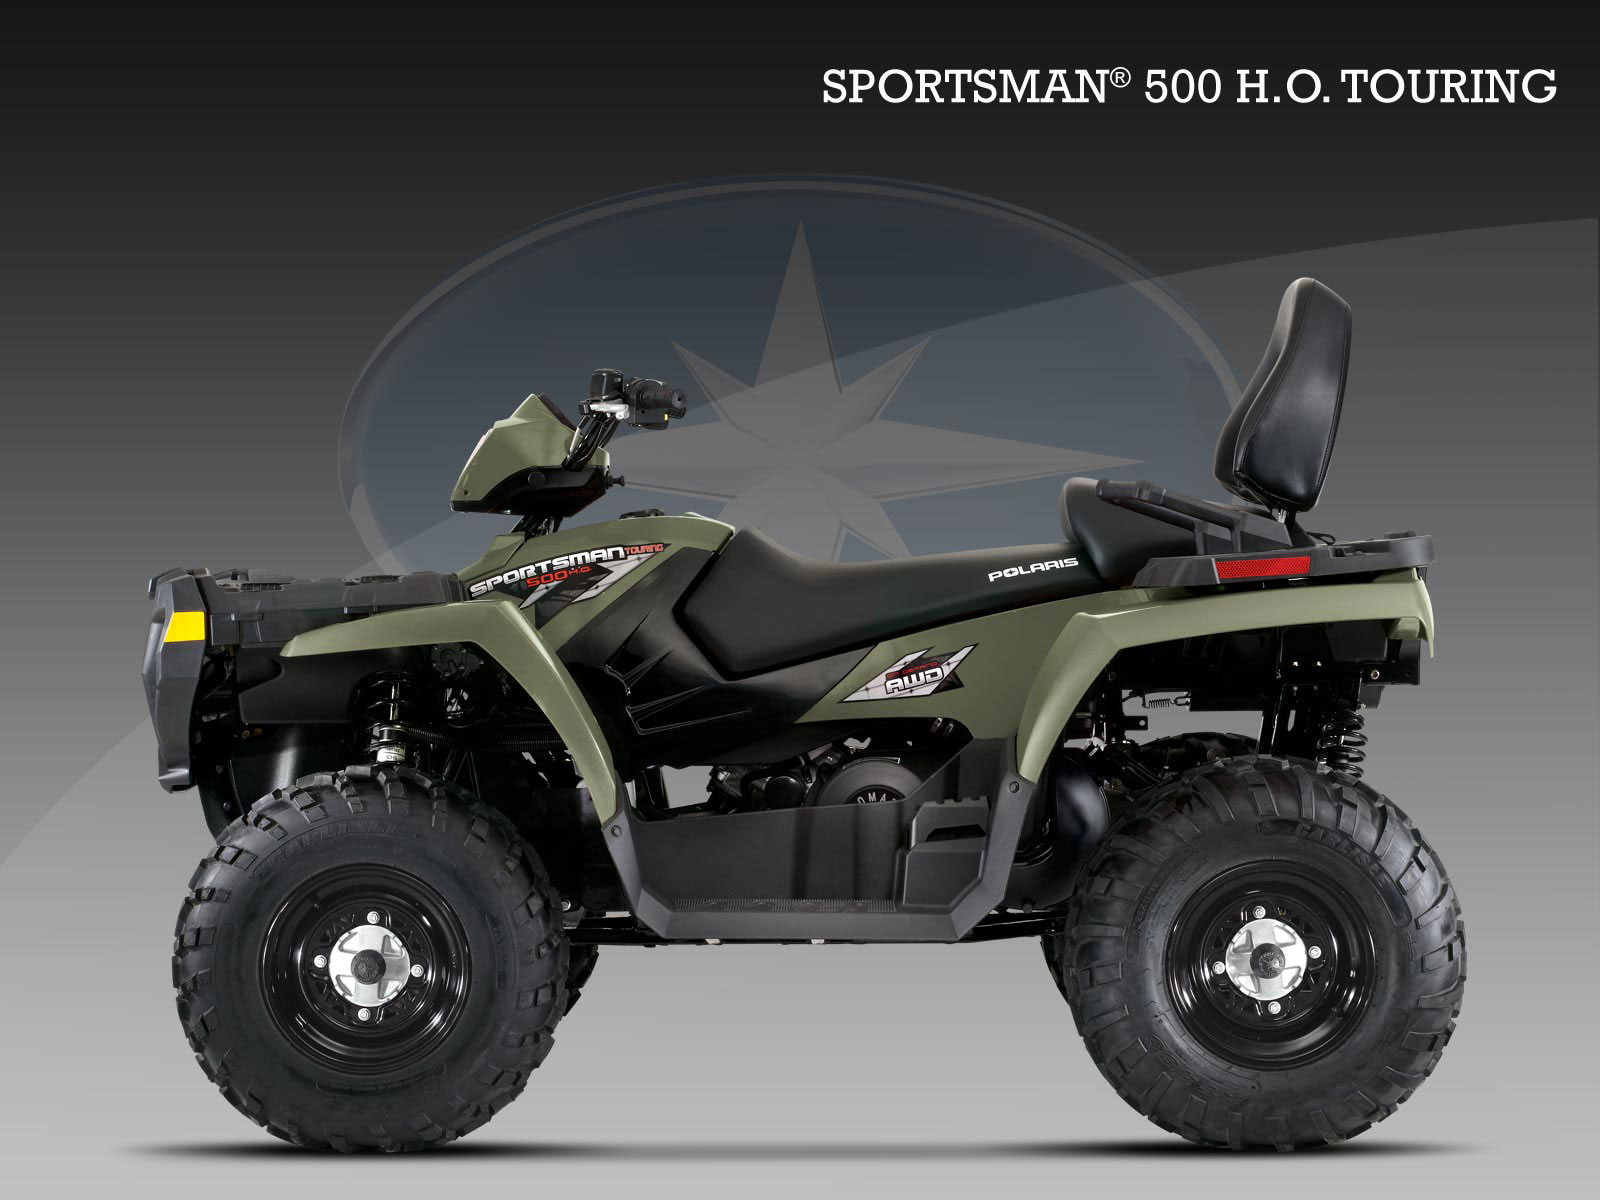 polaris sportsman 500 touring h o specs 2009 2010. Black Bedroom Furniture Sets. Home Design Ideas